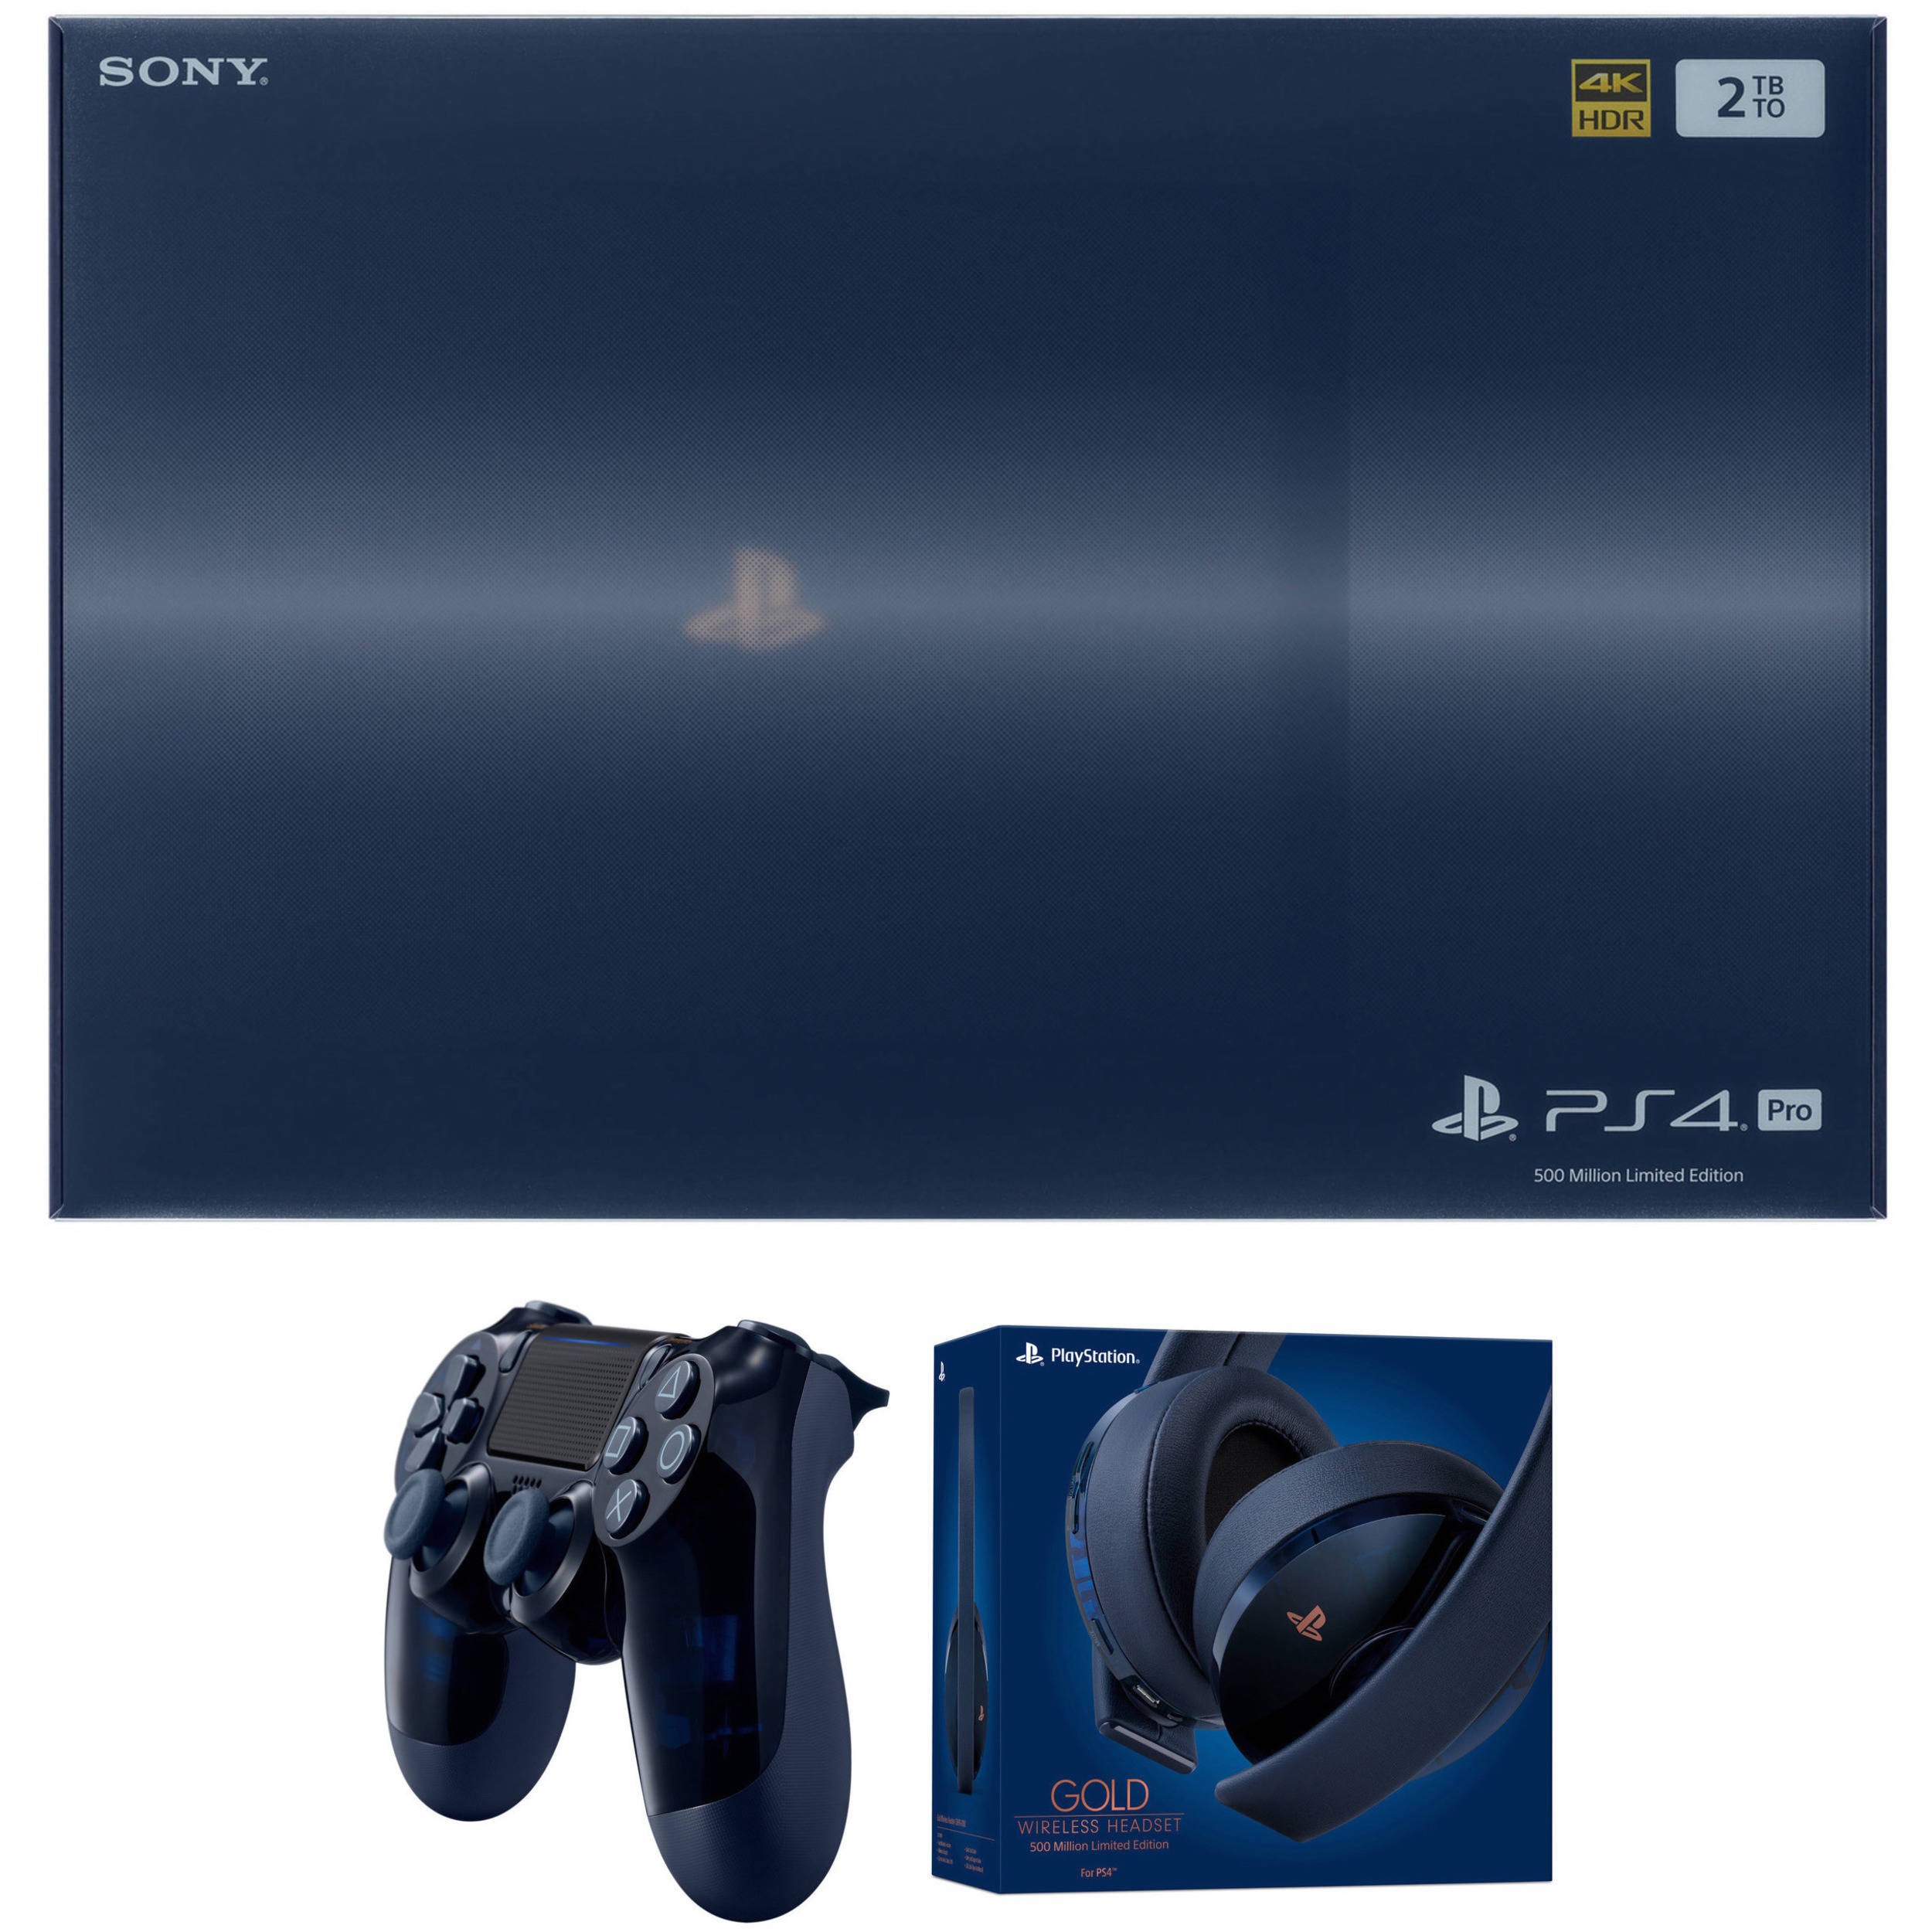 ps4 5 million edition for sale